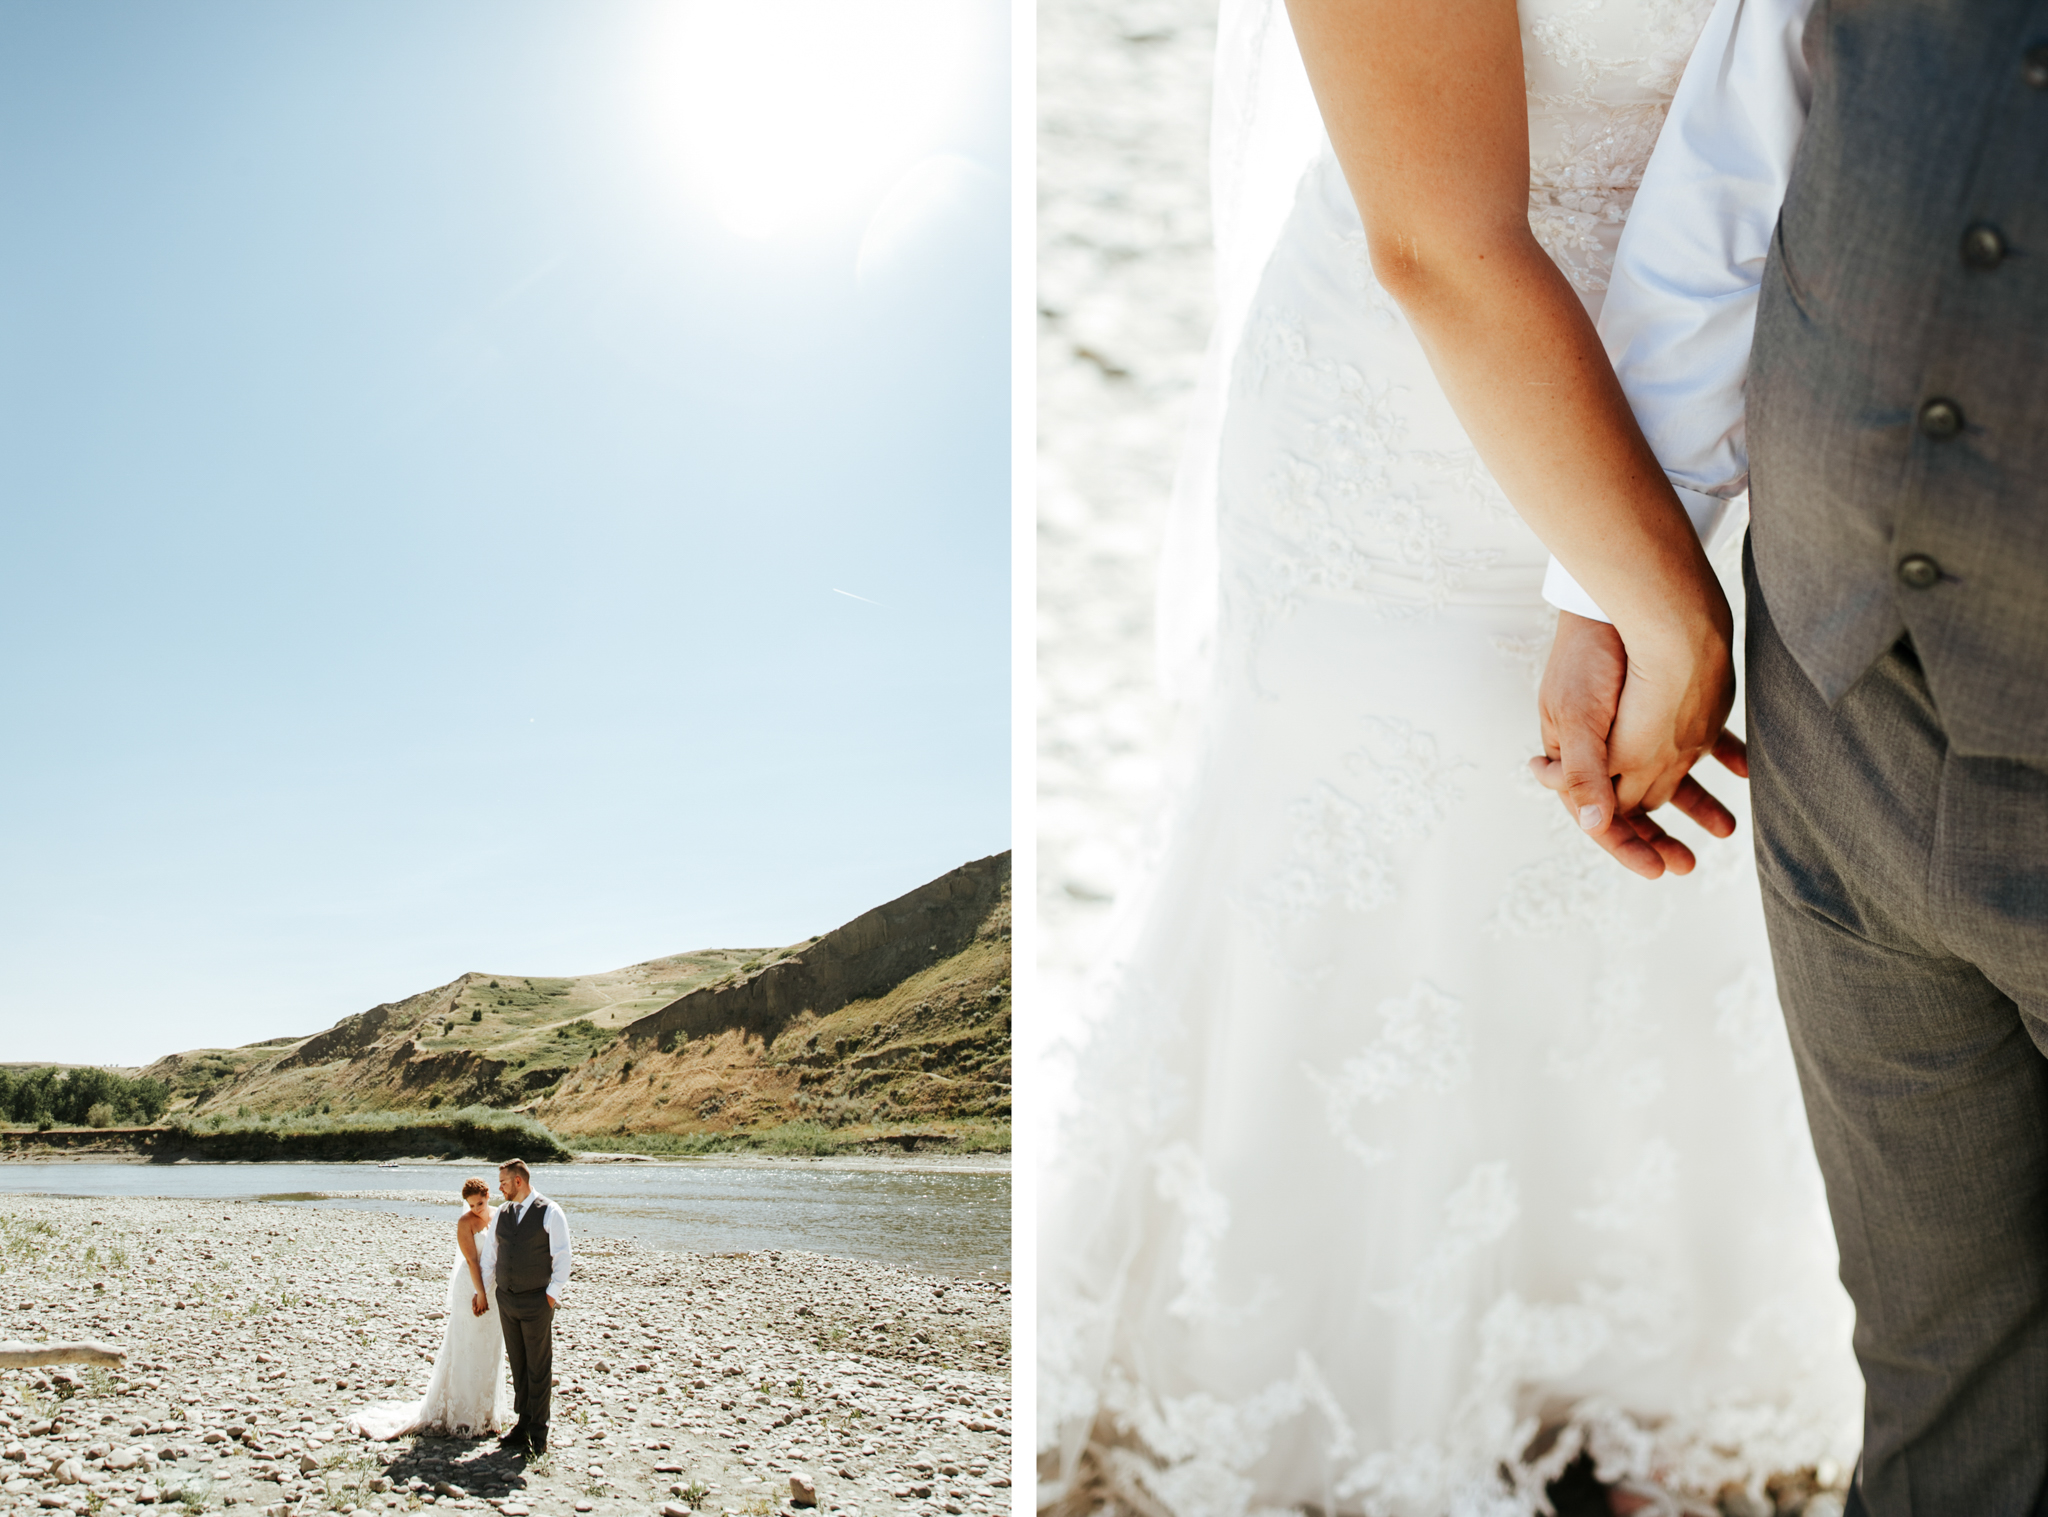 lethbridge-wedding-photographer-love-and-be-loved-photography-trent-danielle-galt-reception-picture-image-photo-139.jpg